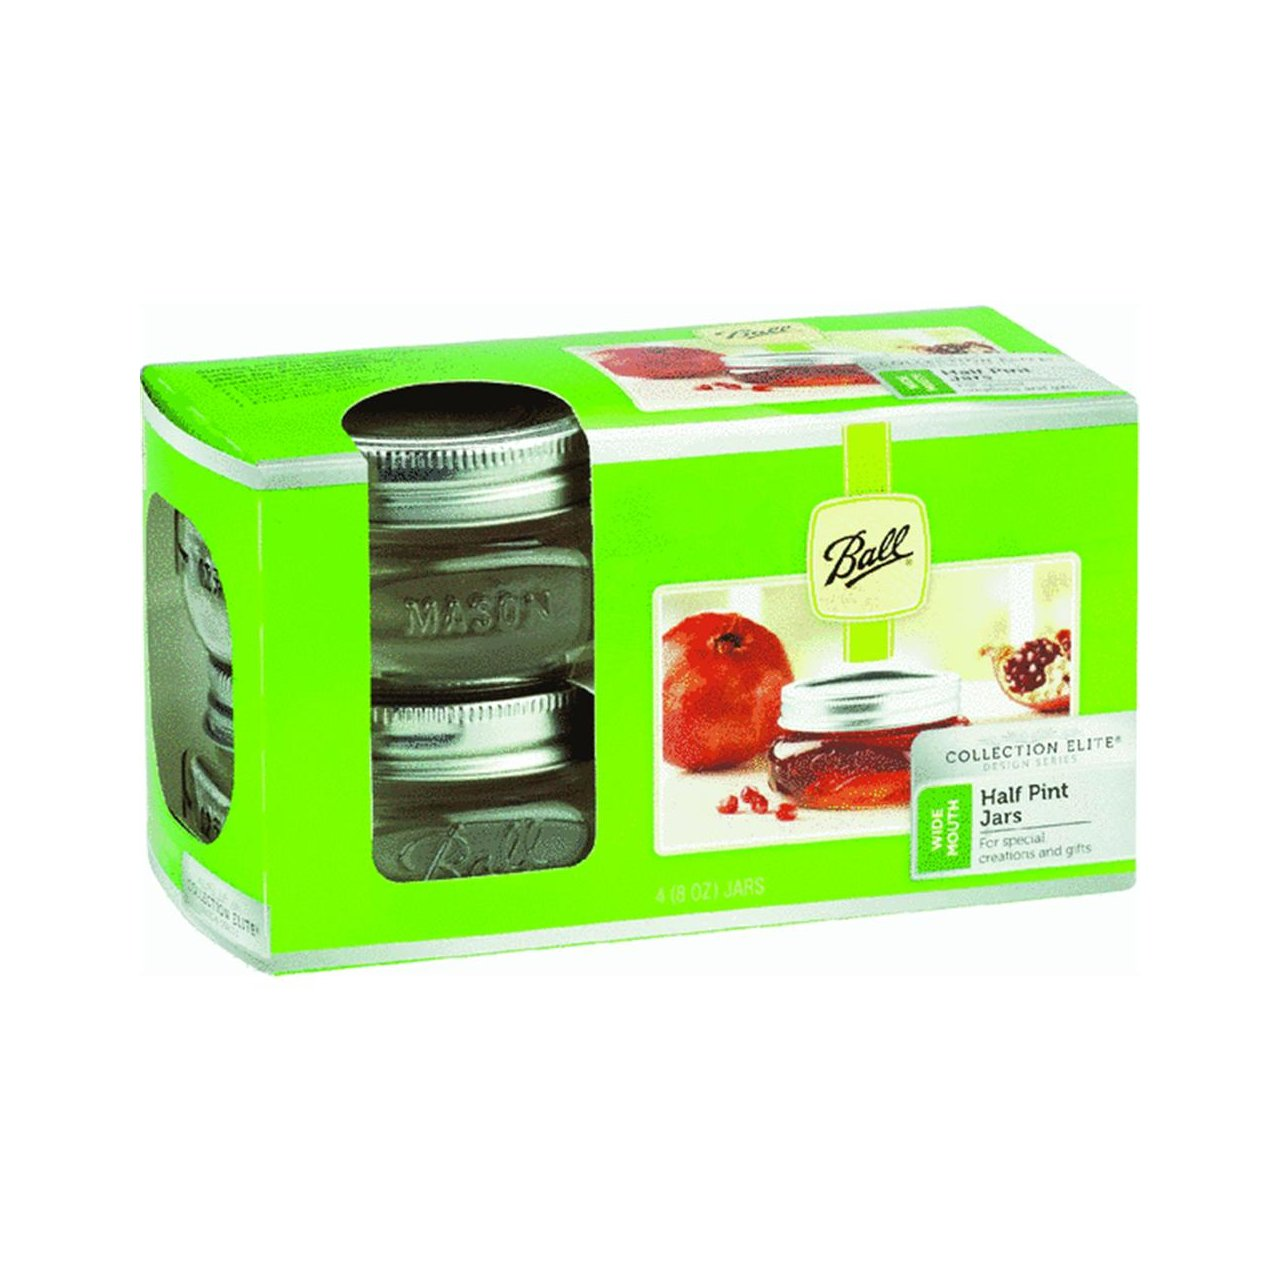 Ball 61162 Wide Mouth Canning Jar, 4-Pack